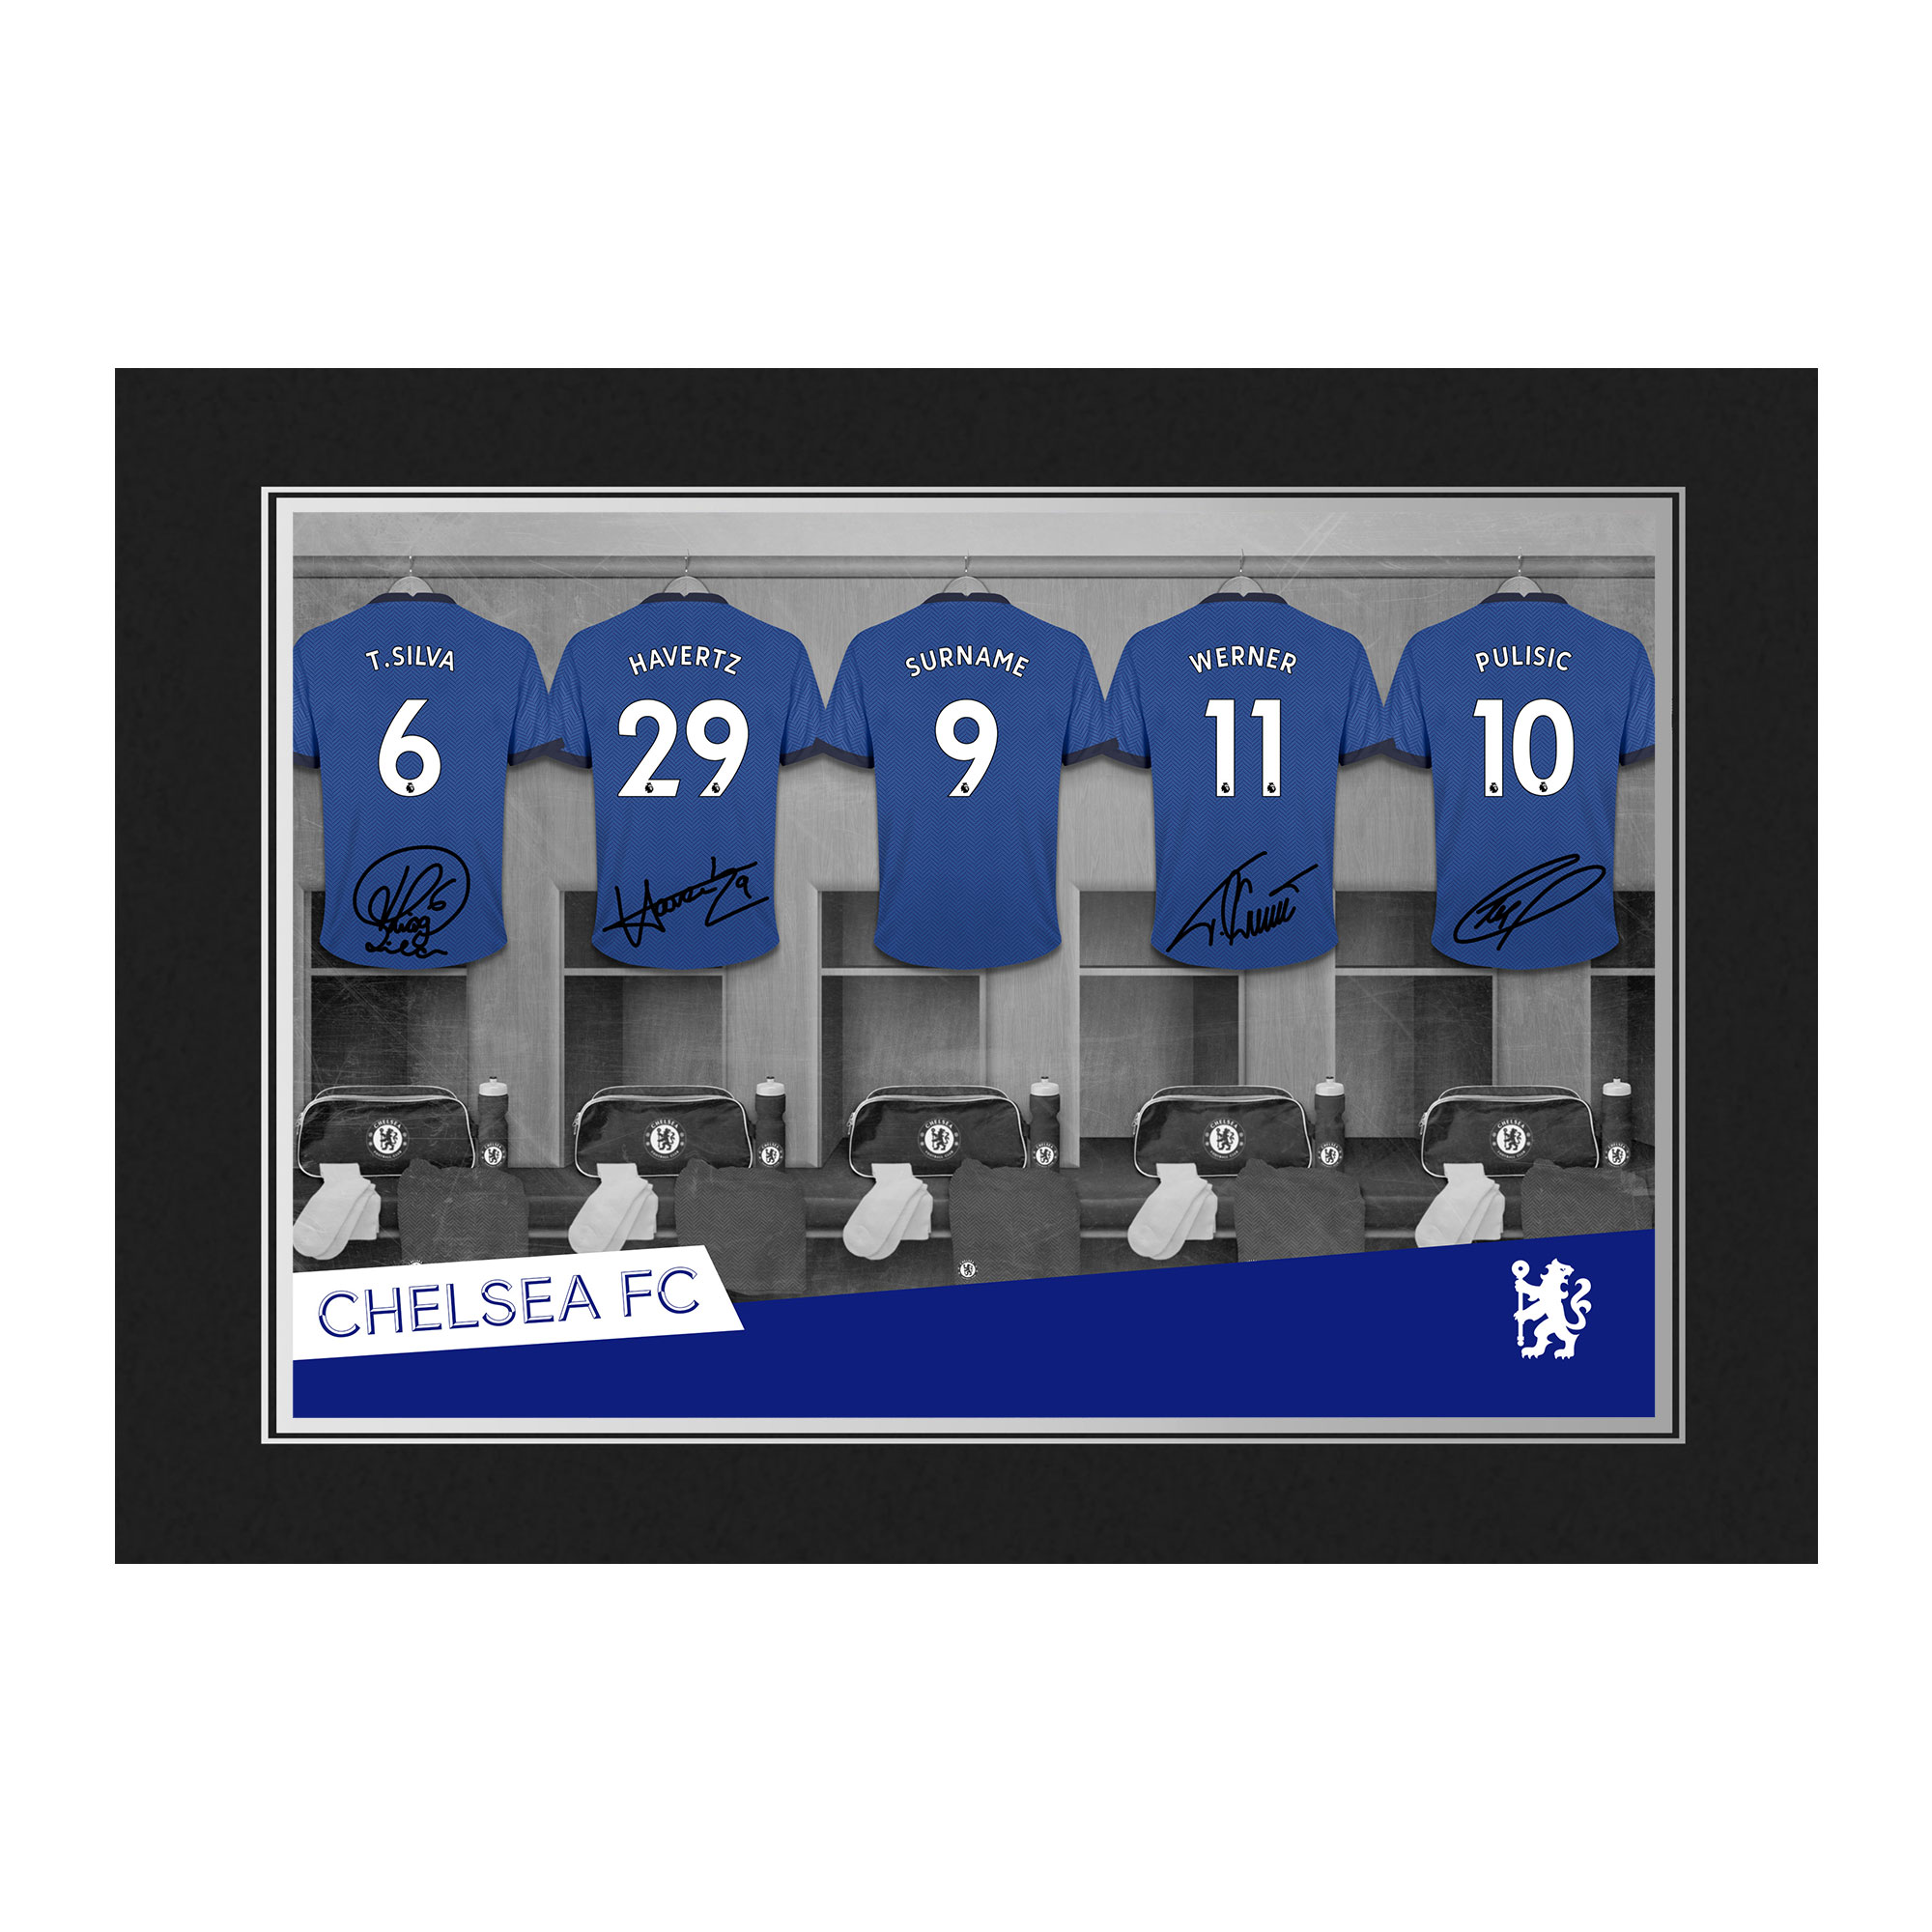 Chelsea FC 9x6 Dressing Room Photo Folder